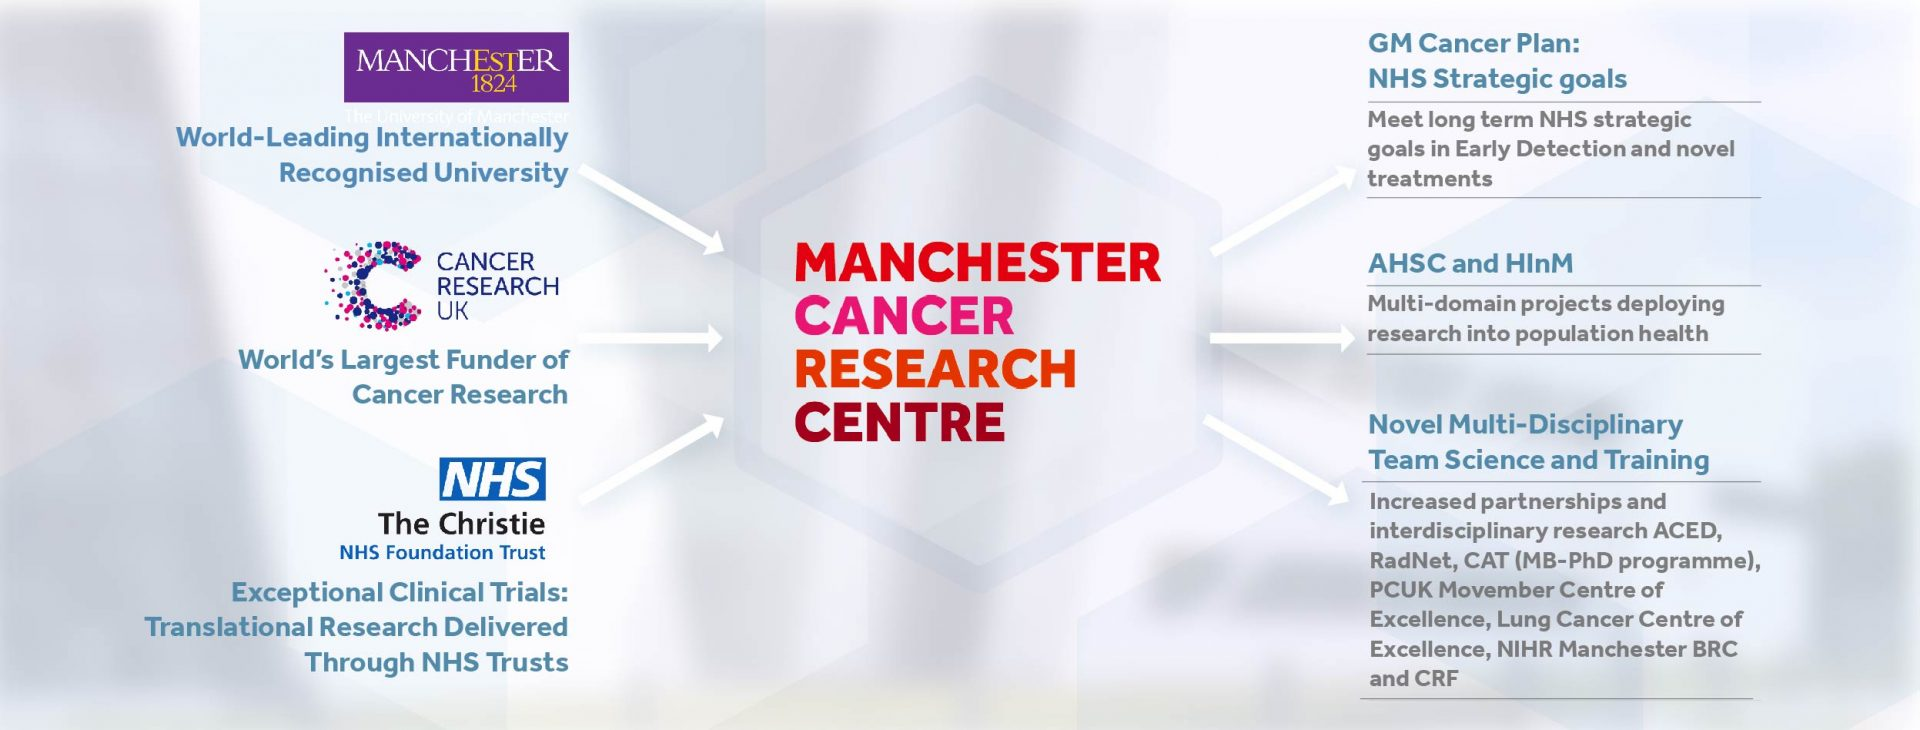 The University of Manchester, Cancer Research UK, and the Christie NHS Foundation Trust, feed into the Manchester Cancer Research Centre, leading to the GM Cancer Plan and meeting long term NHS strategic goals in Early Detection and novel treatment), AHSC and HInM (multi-domain projects deploying research into population health), and Novel Multi-Disciplinary Team Science and Training through increased partnerships and interdisciplinary research